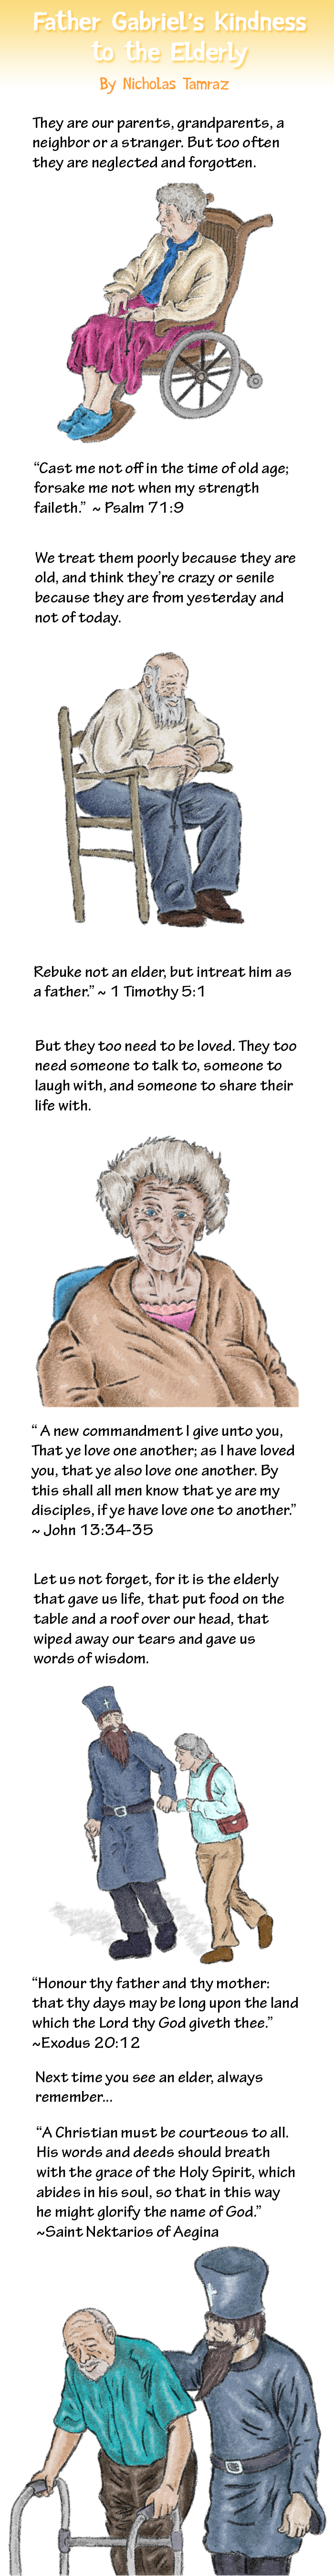 Father Gabriel's Kindness to the Elderly webcomic